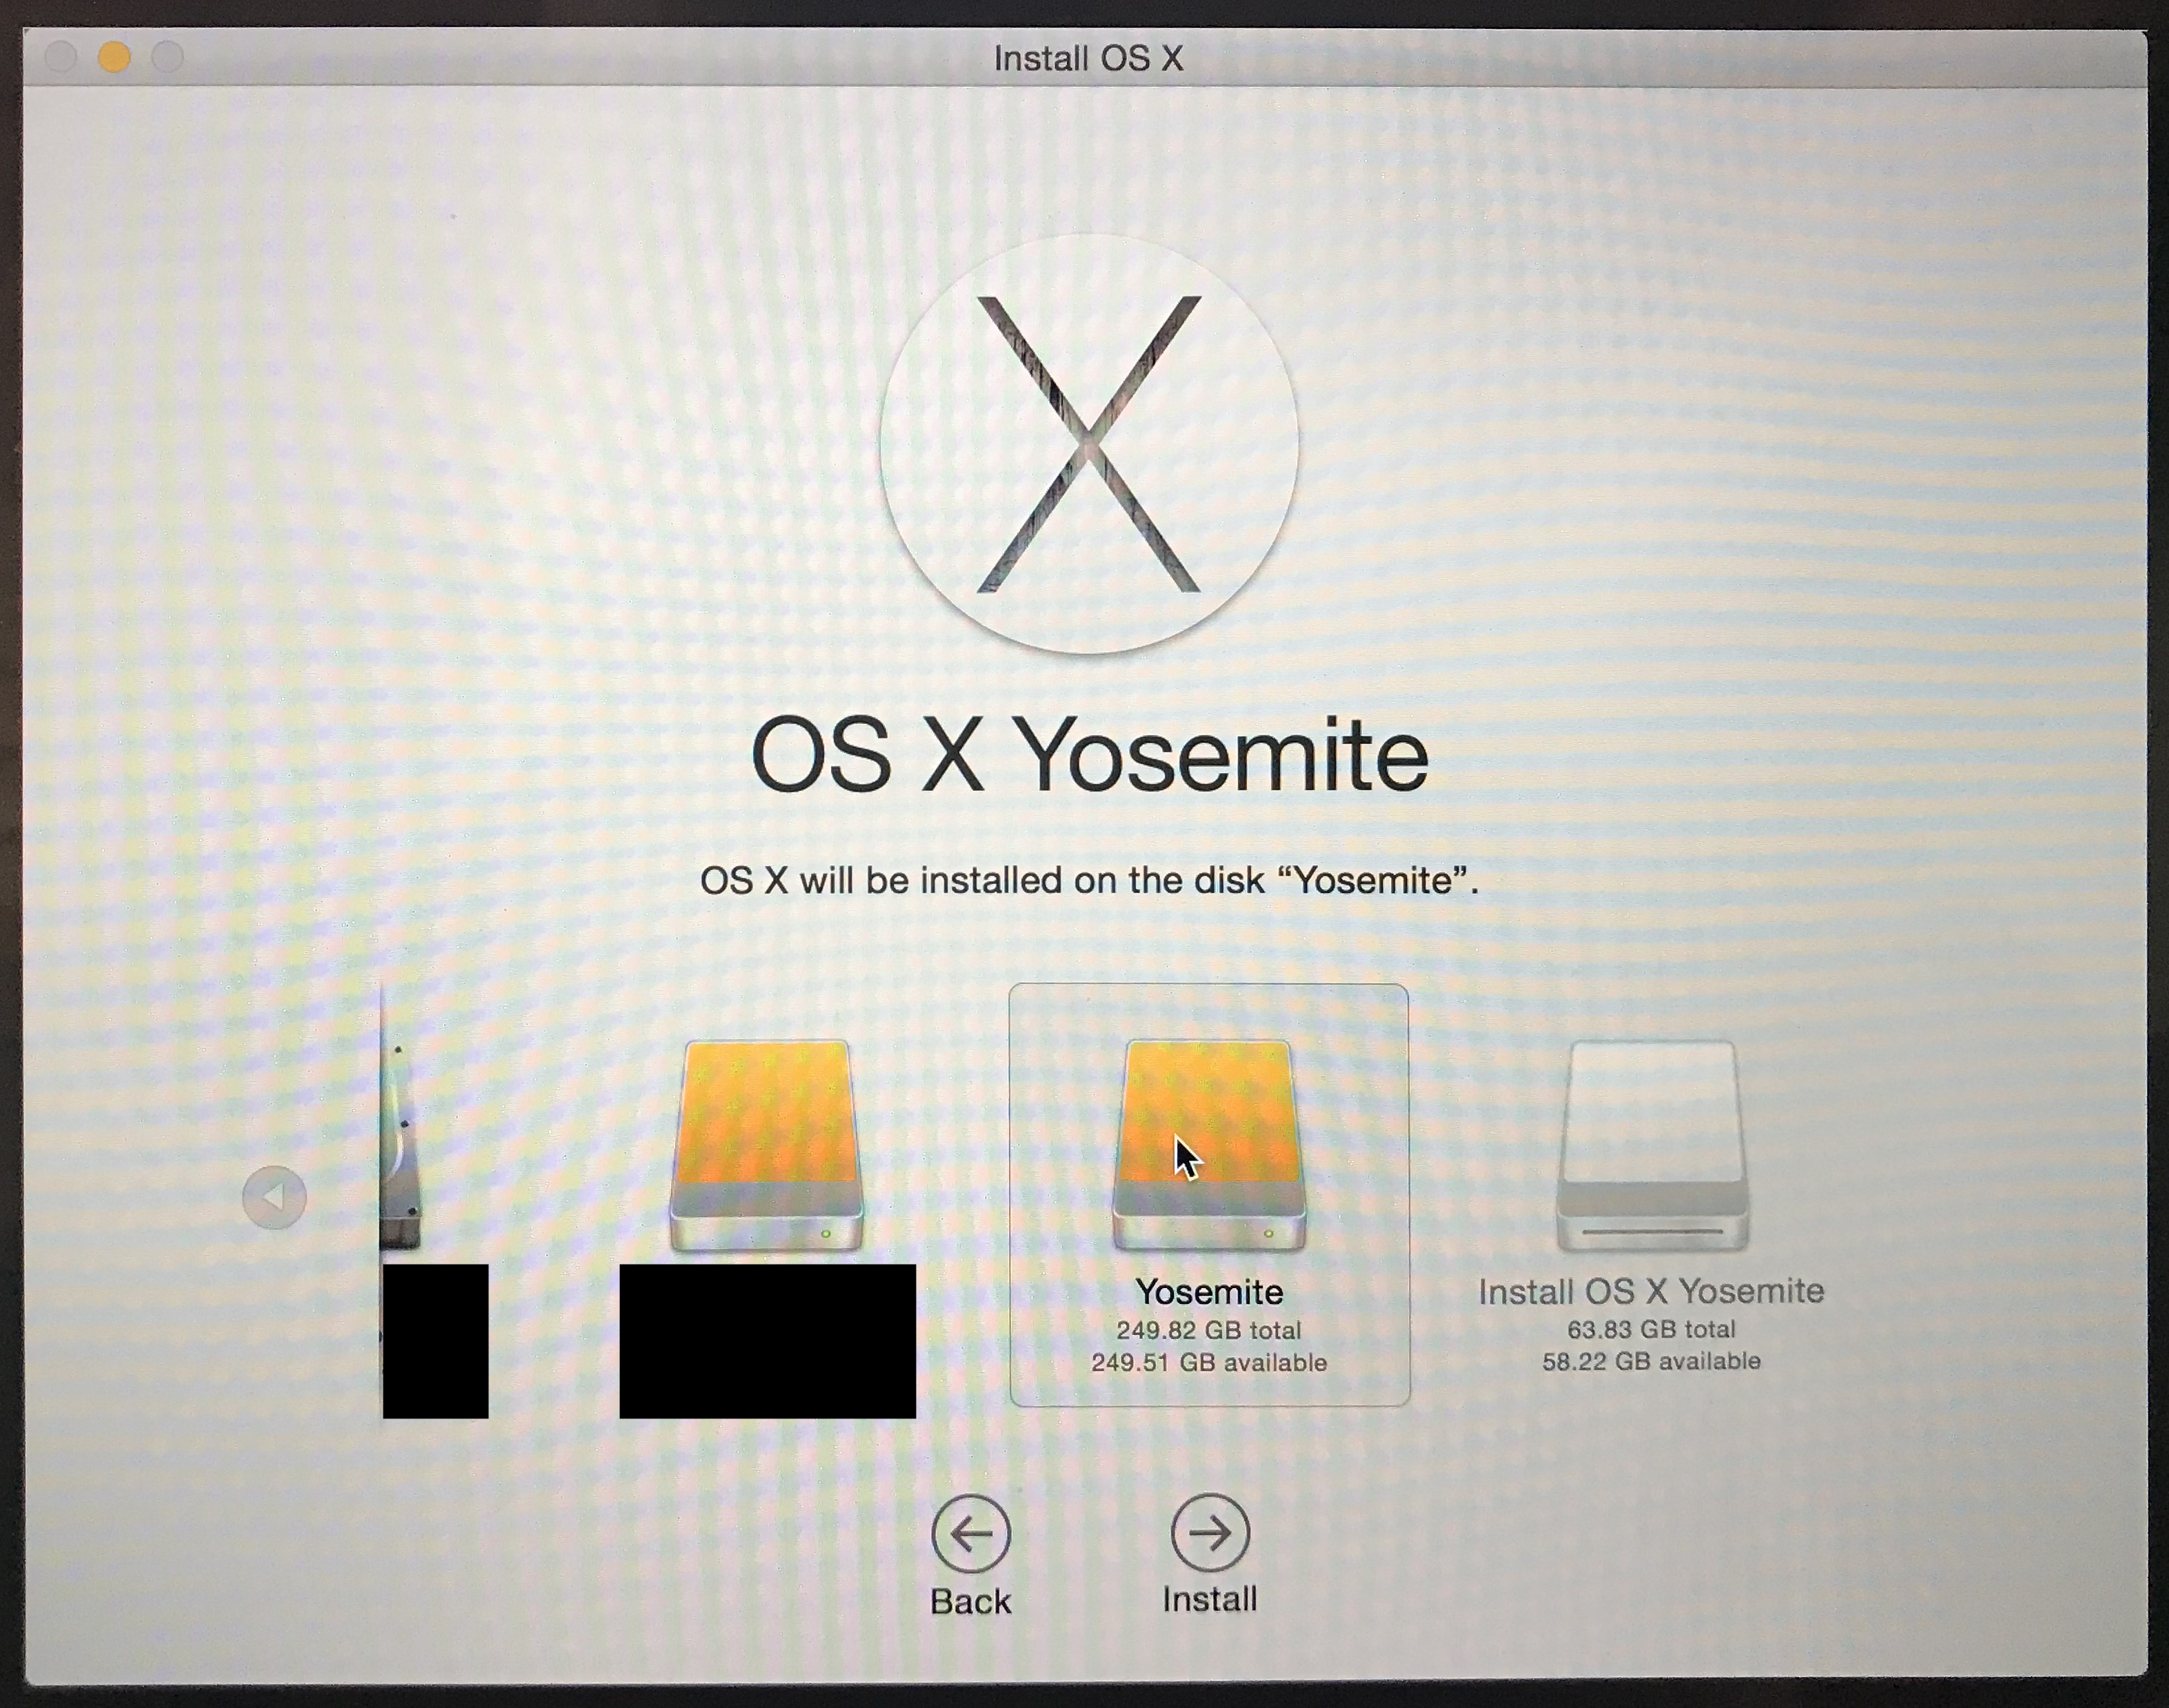 Downloading and installing an old version of OS X (mac OS